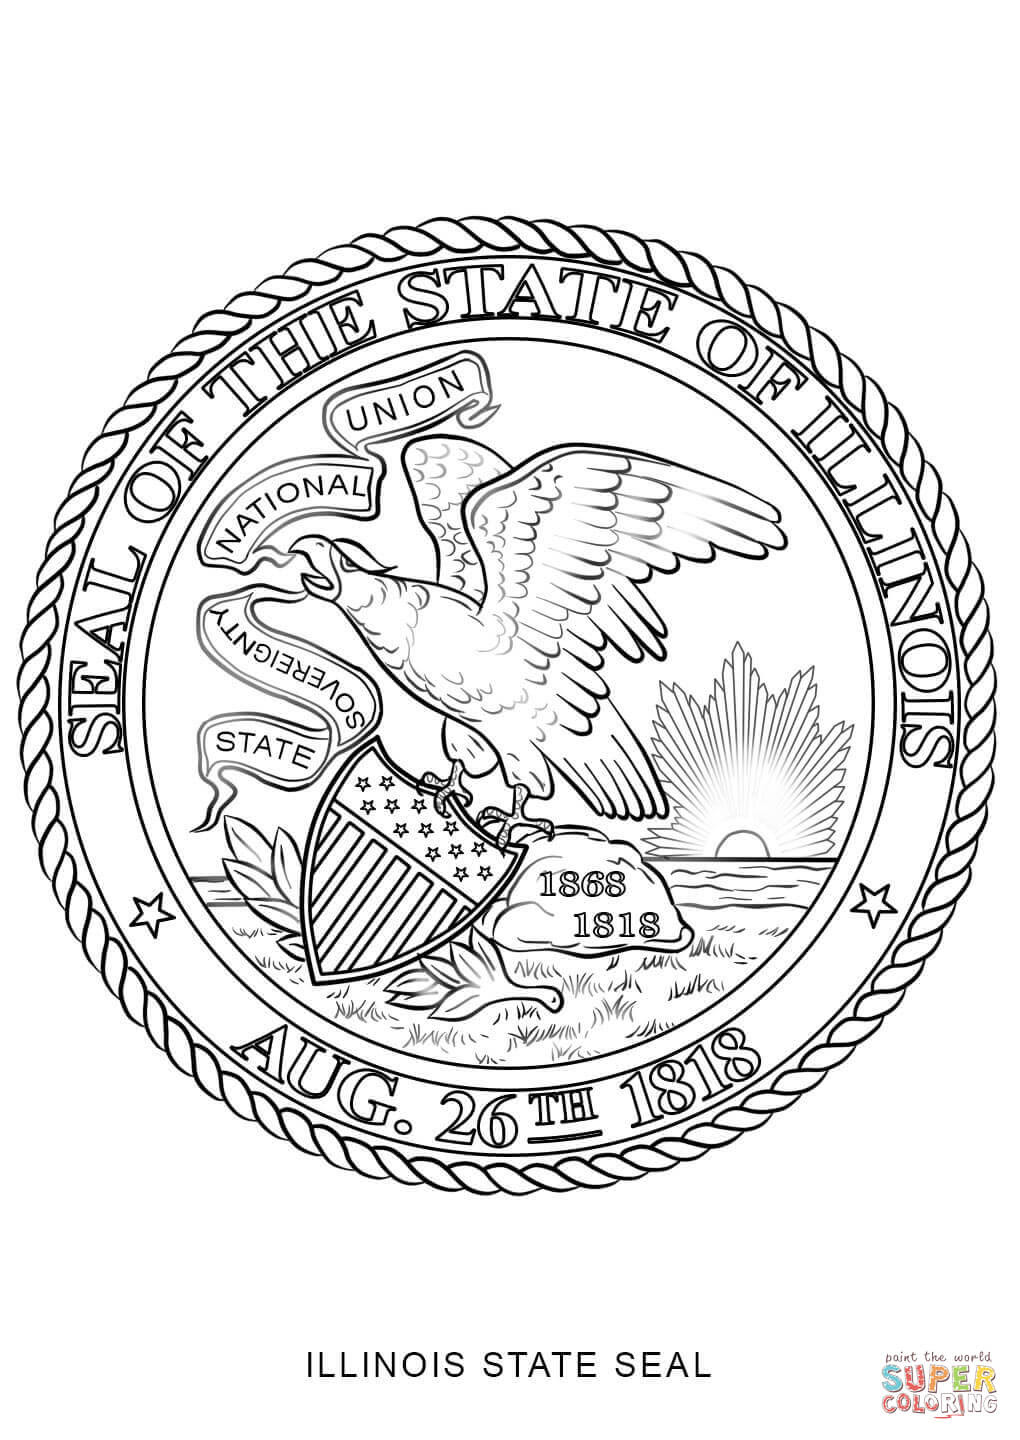 nc state seal coloring pages - photo#5